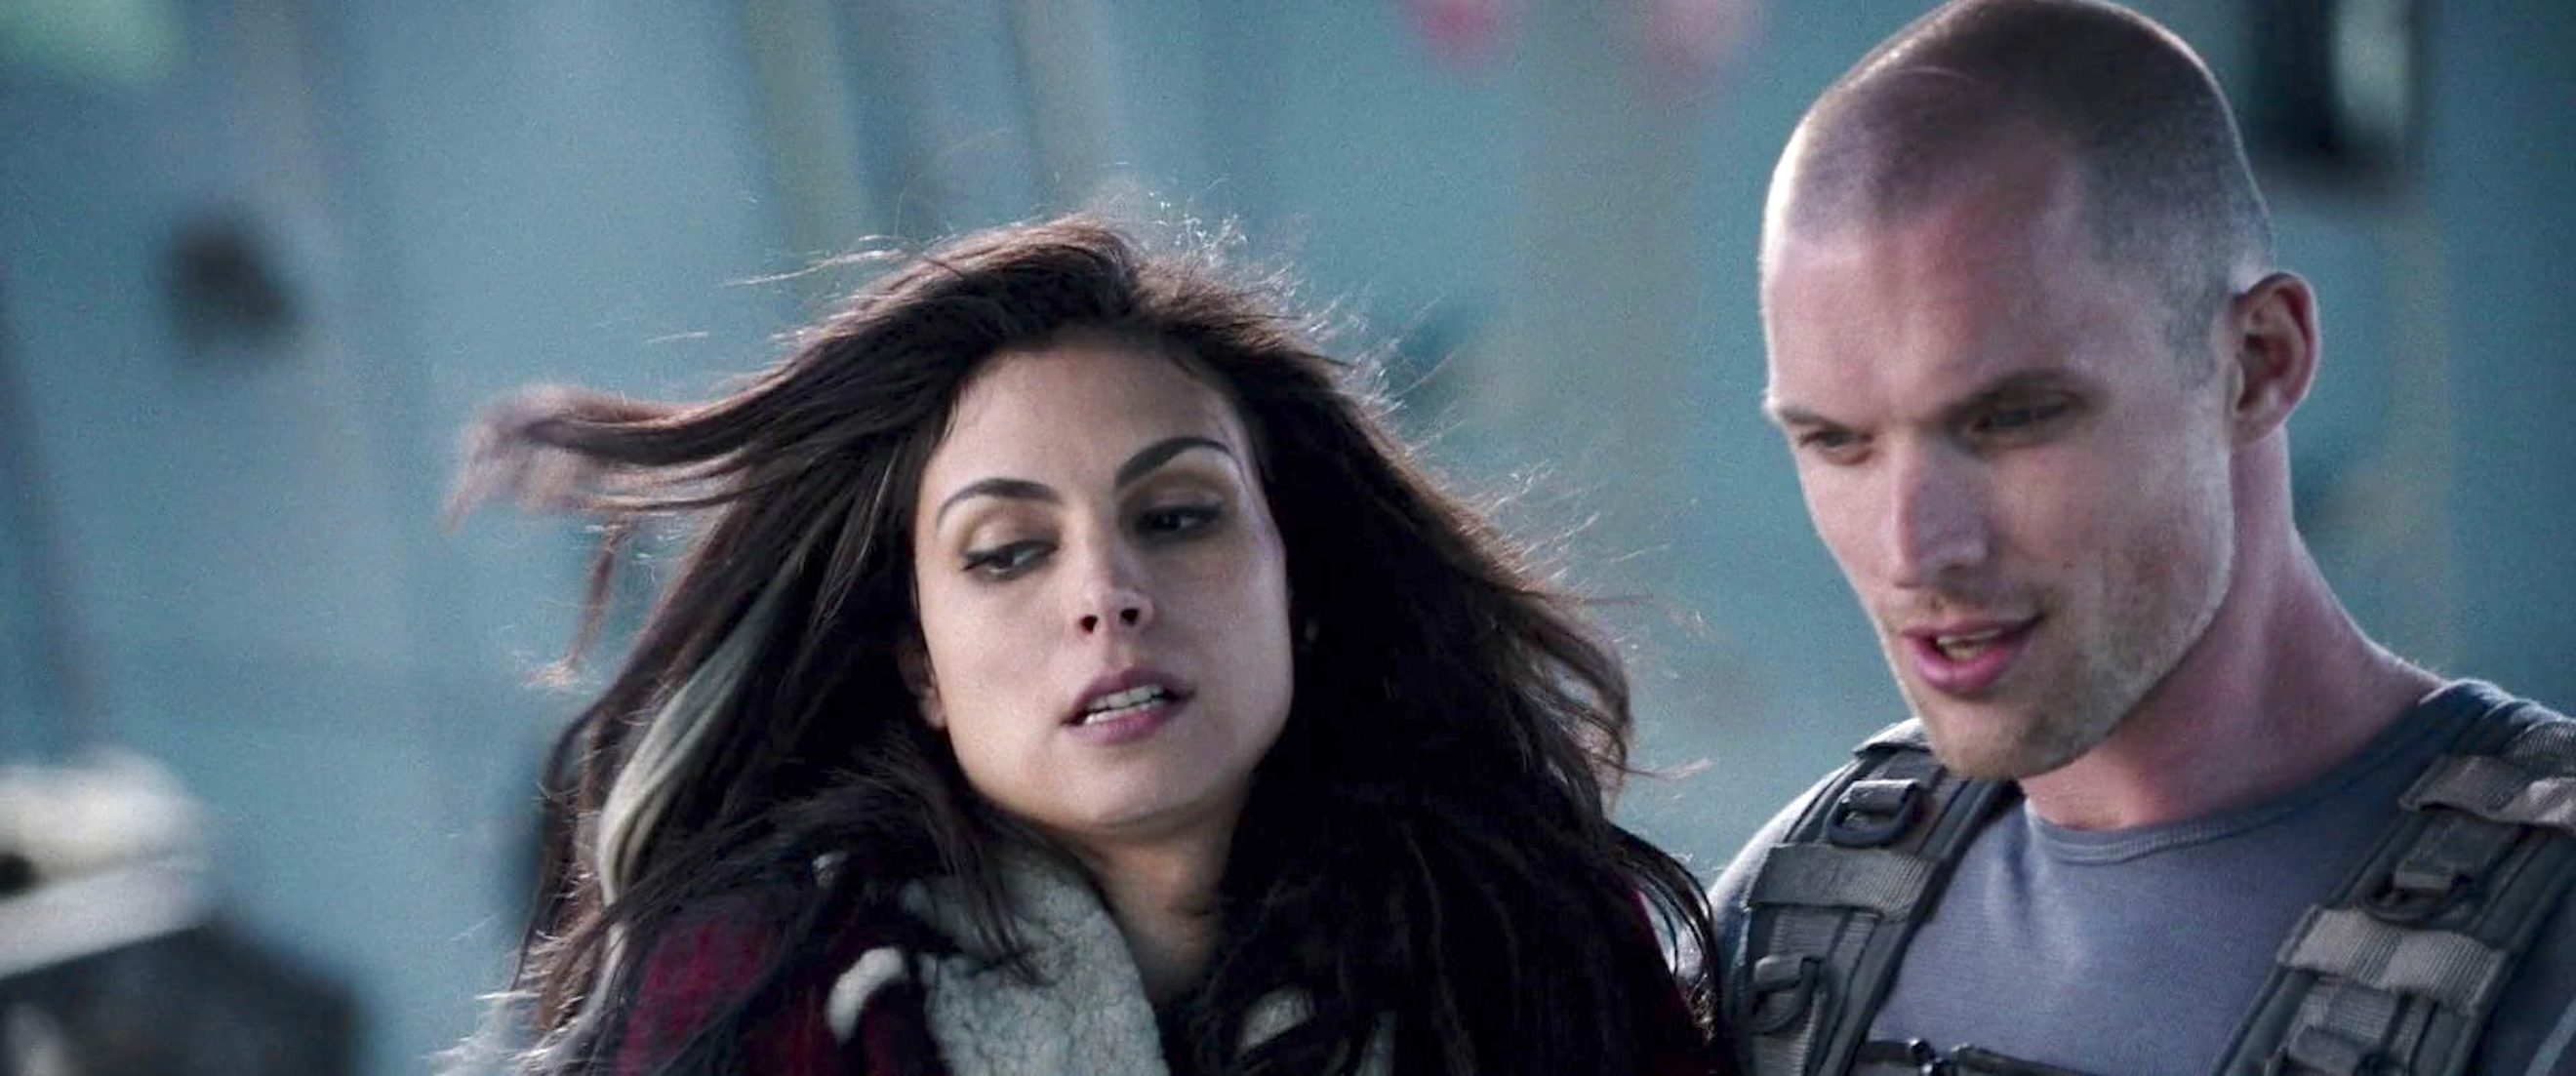 Morena Baccarin and Ed Skrein in Deadpool (2016)